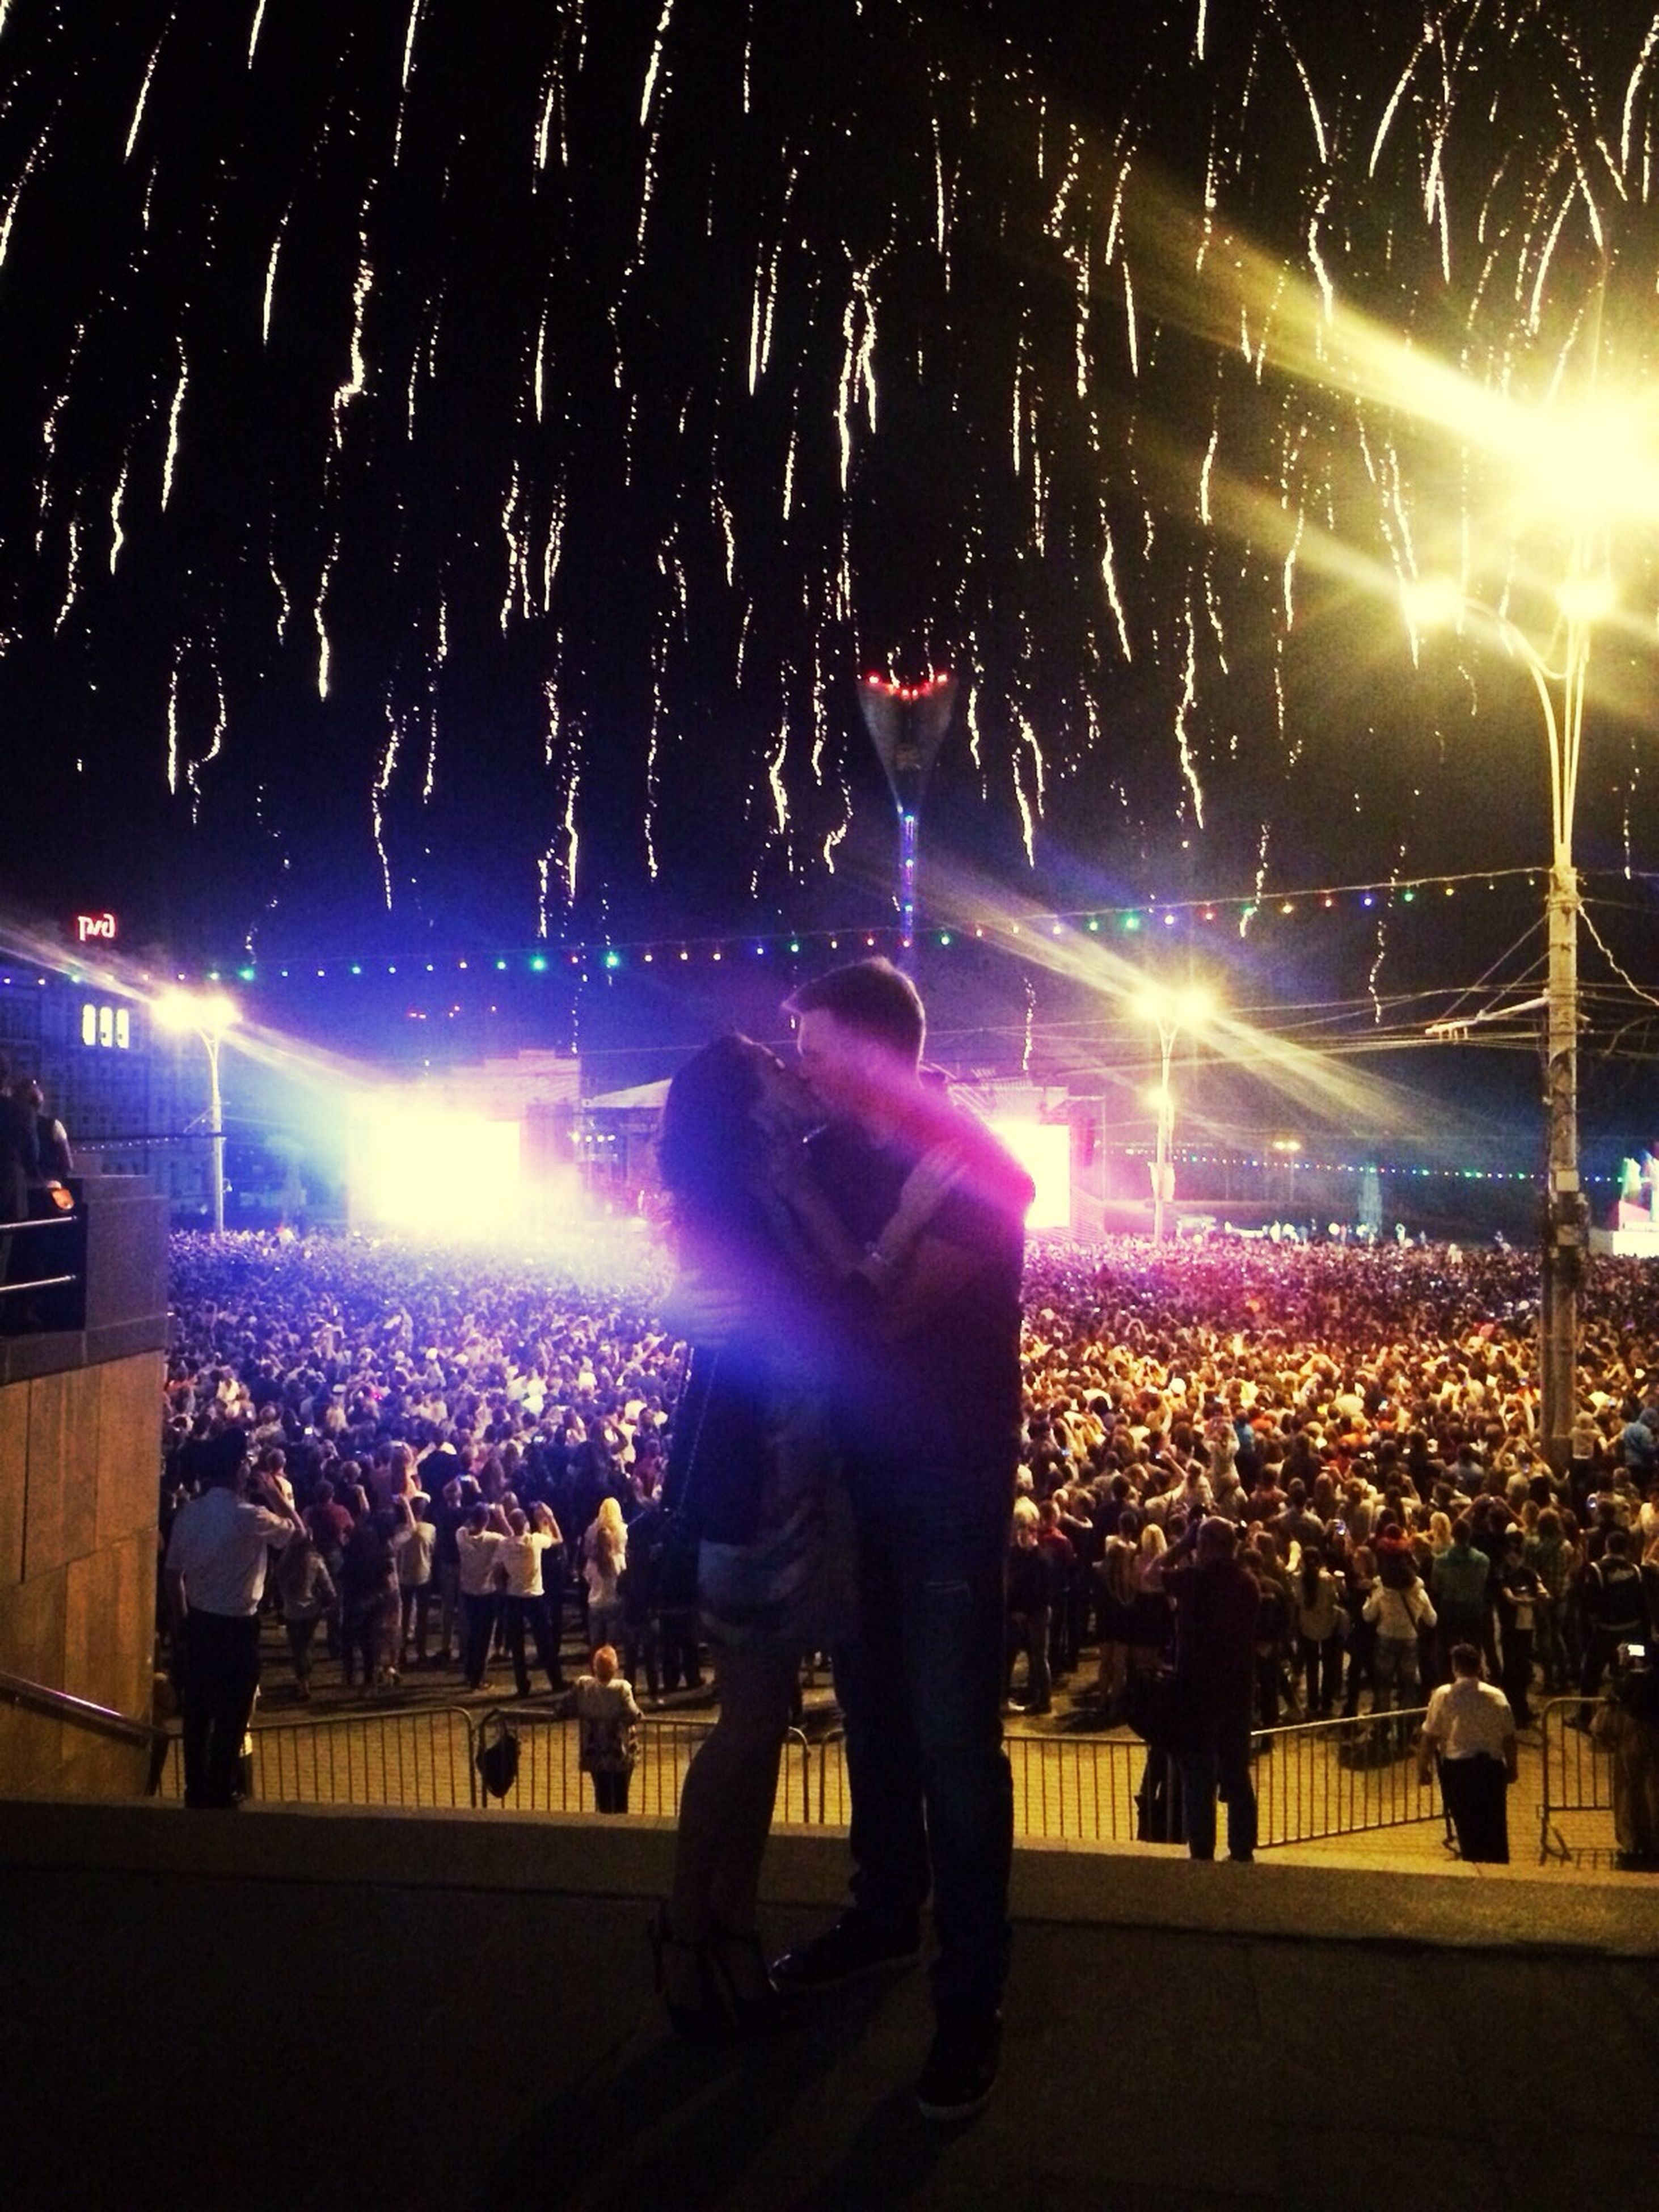 night, illuminated, celebration, arts culture and entertainment, event, large group of people, lifestyles, lighting equipment, leisure activity, men, firework display, crowd, exploding, enjoyment, person, glowing, firework - man made object, performance, nightlife